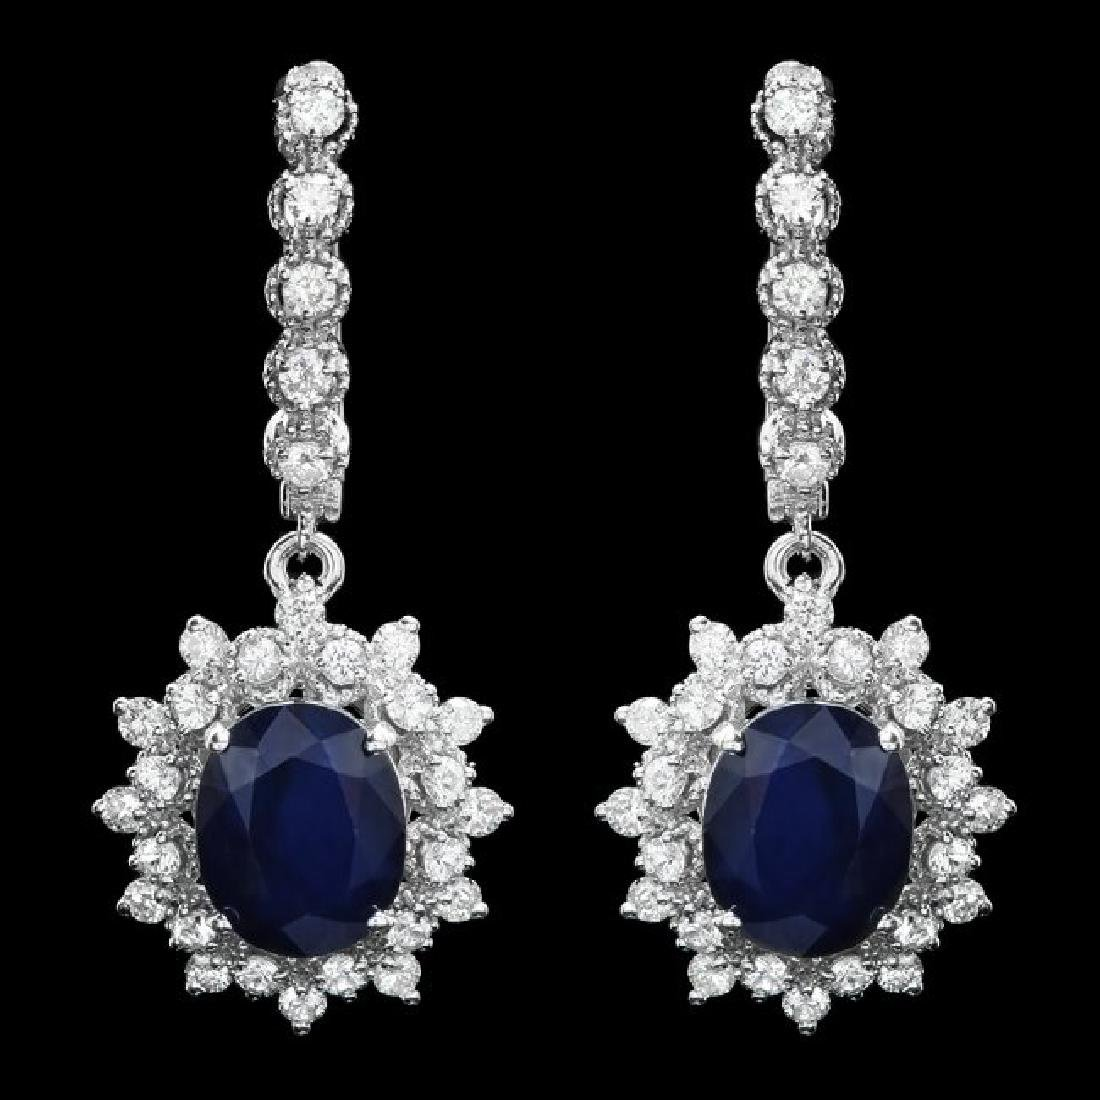 14k Gold 6.0ct Sapphire 1.60ct Diamond Earrings